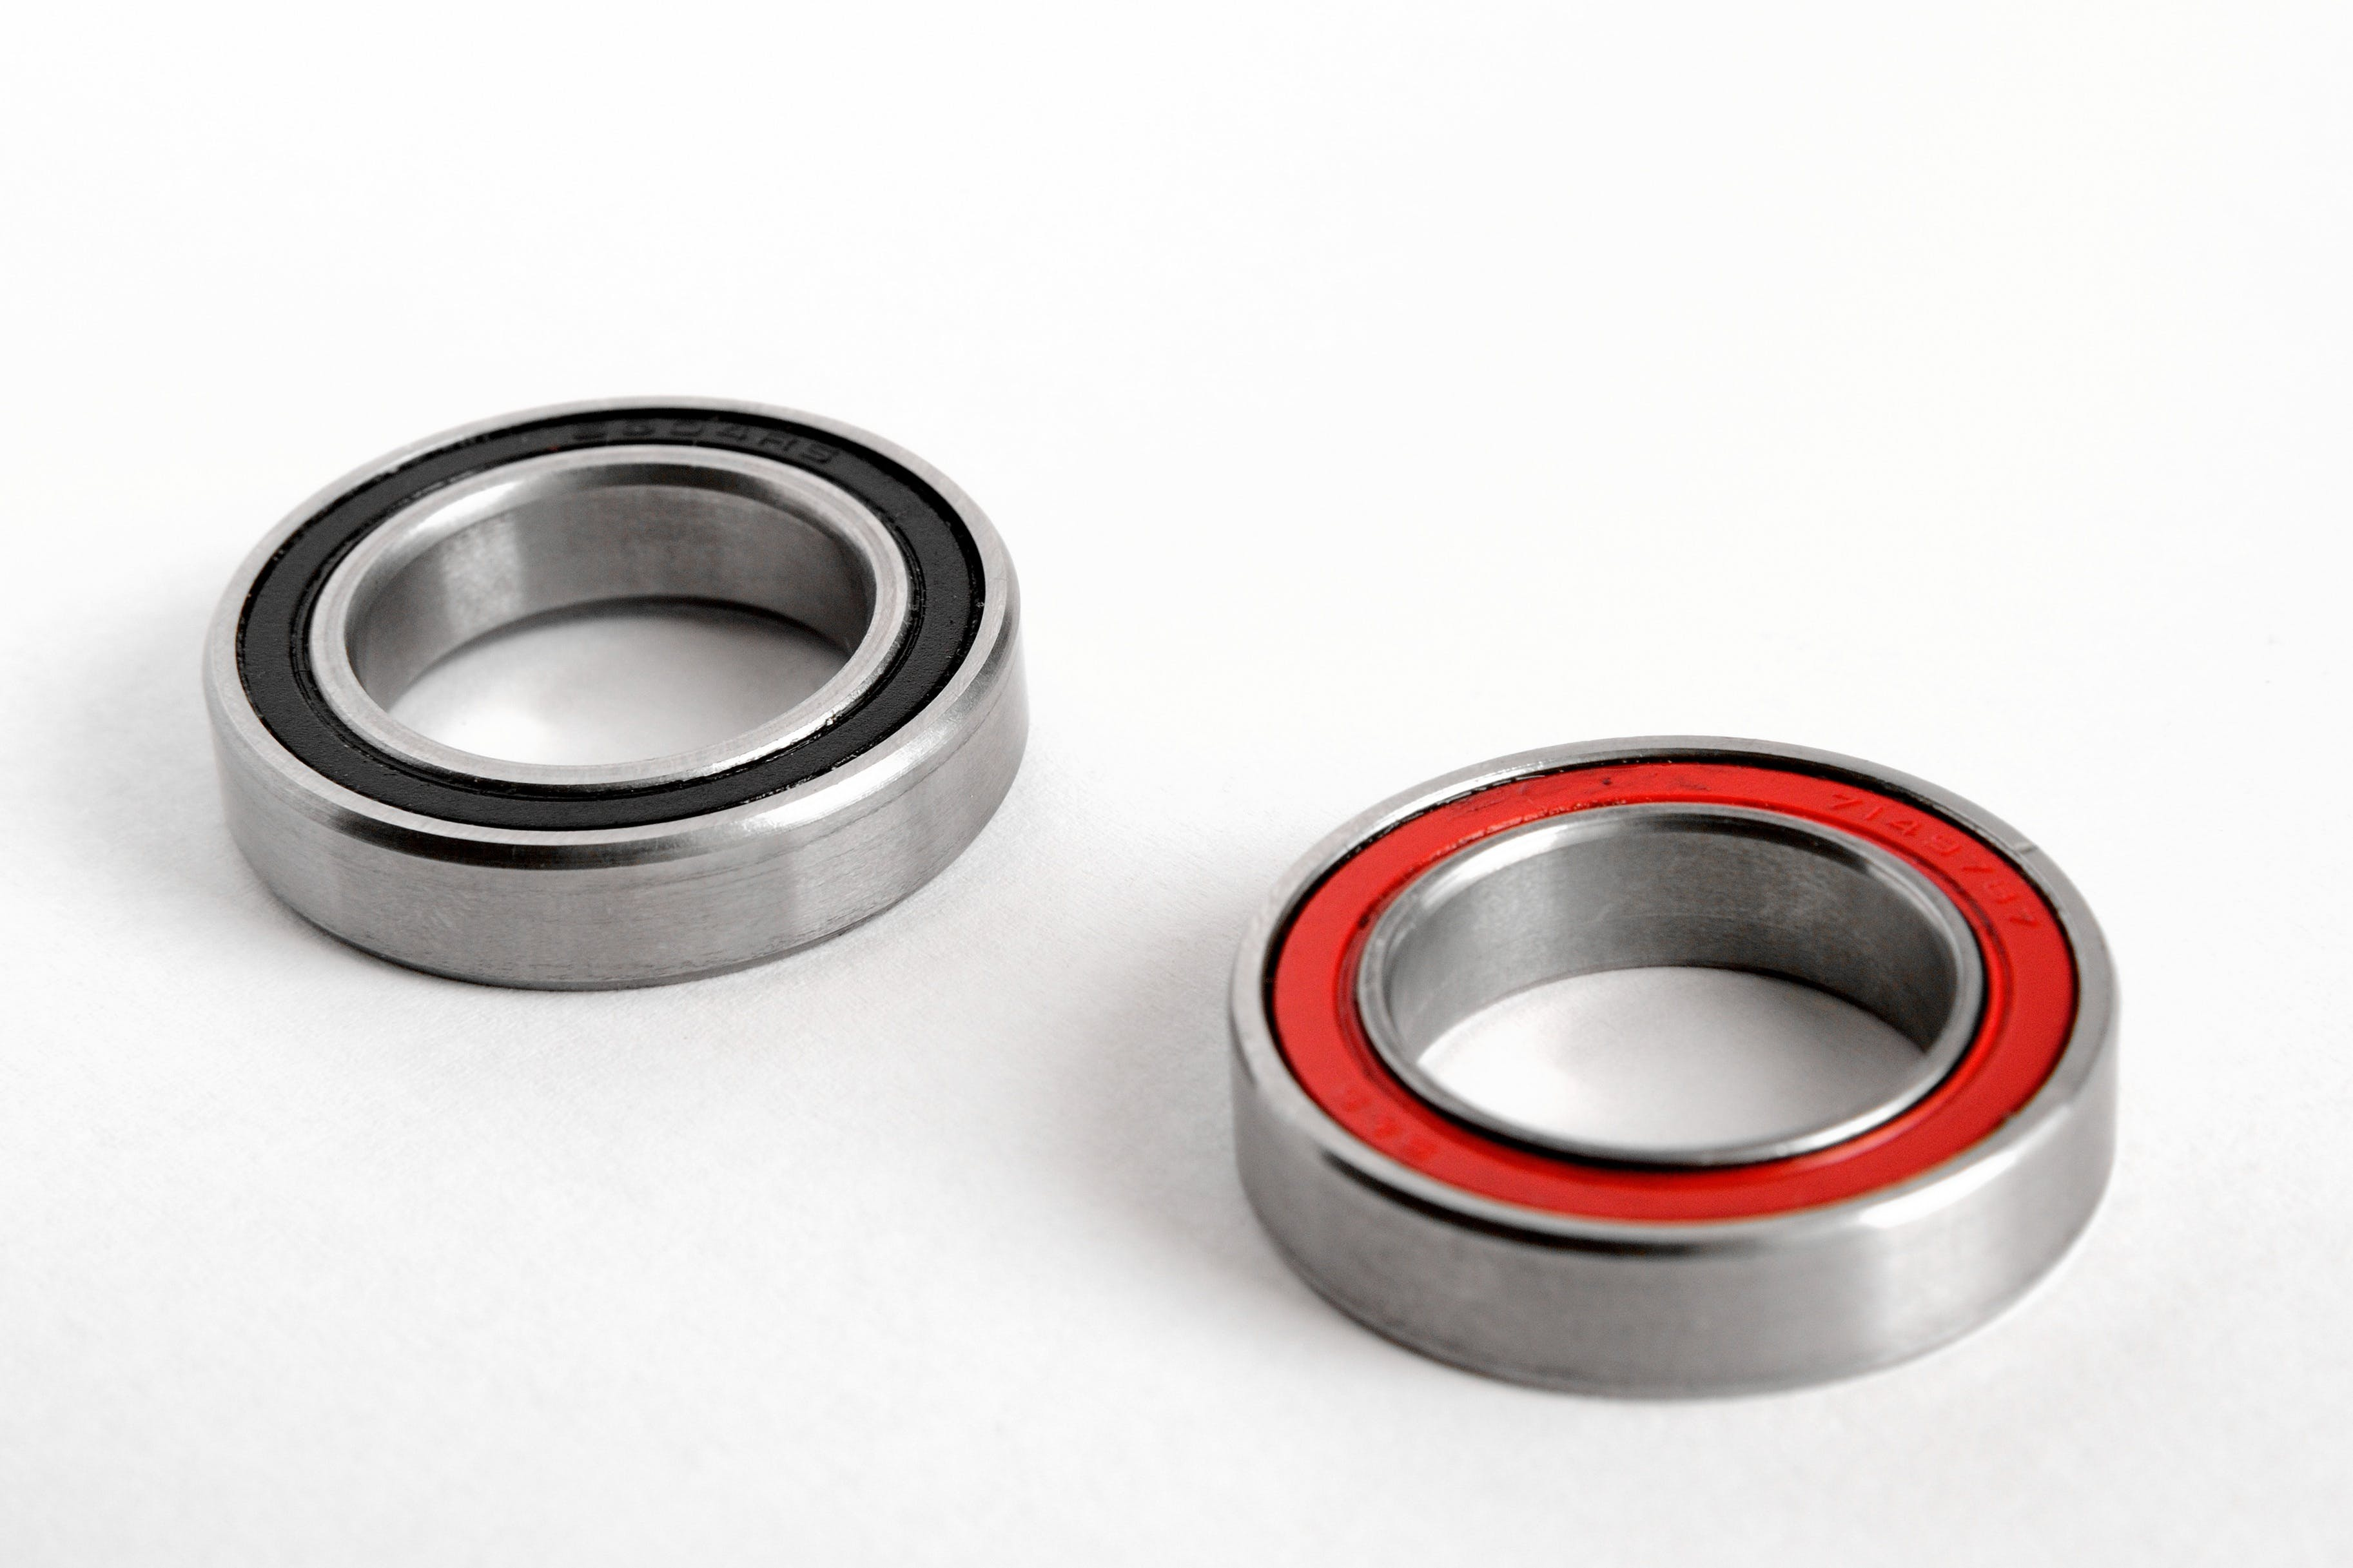 Two Stainless Steel Bearings